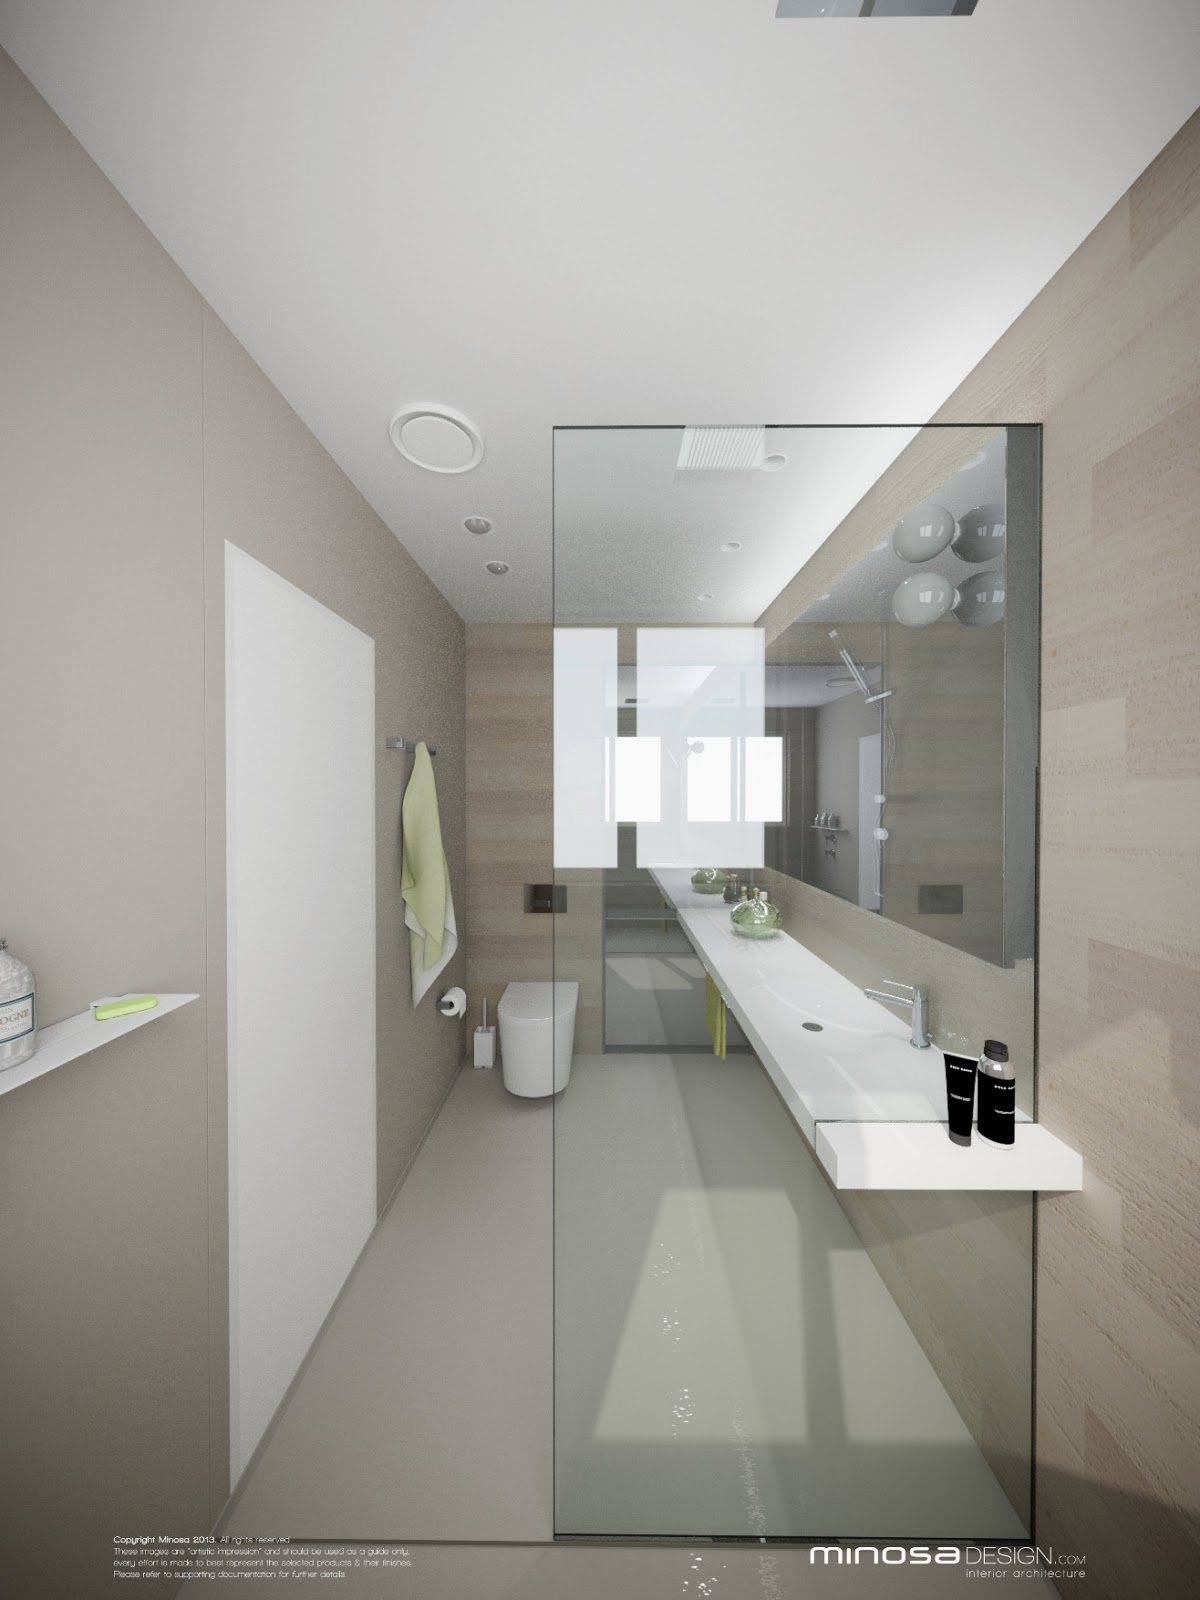 Minosa bringing sexy back the modern bathroom for Hot bathroom